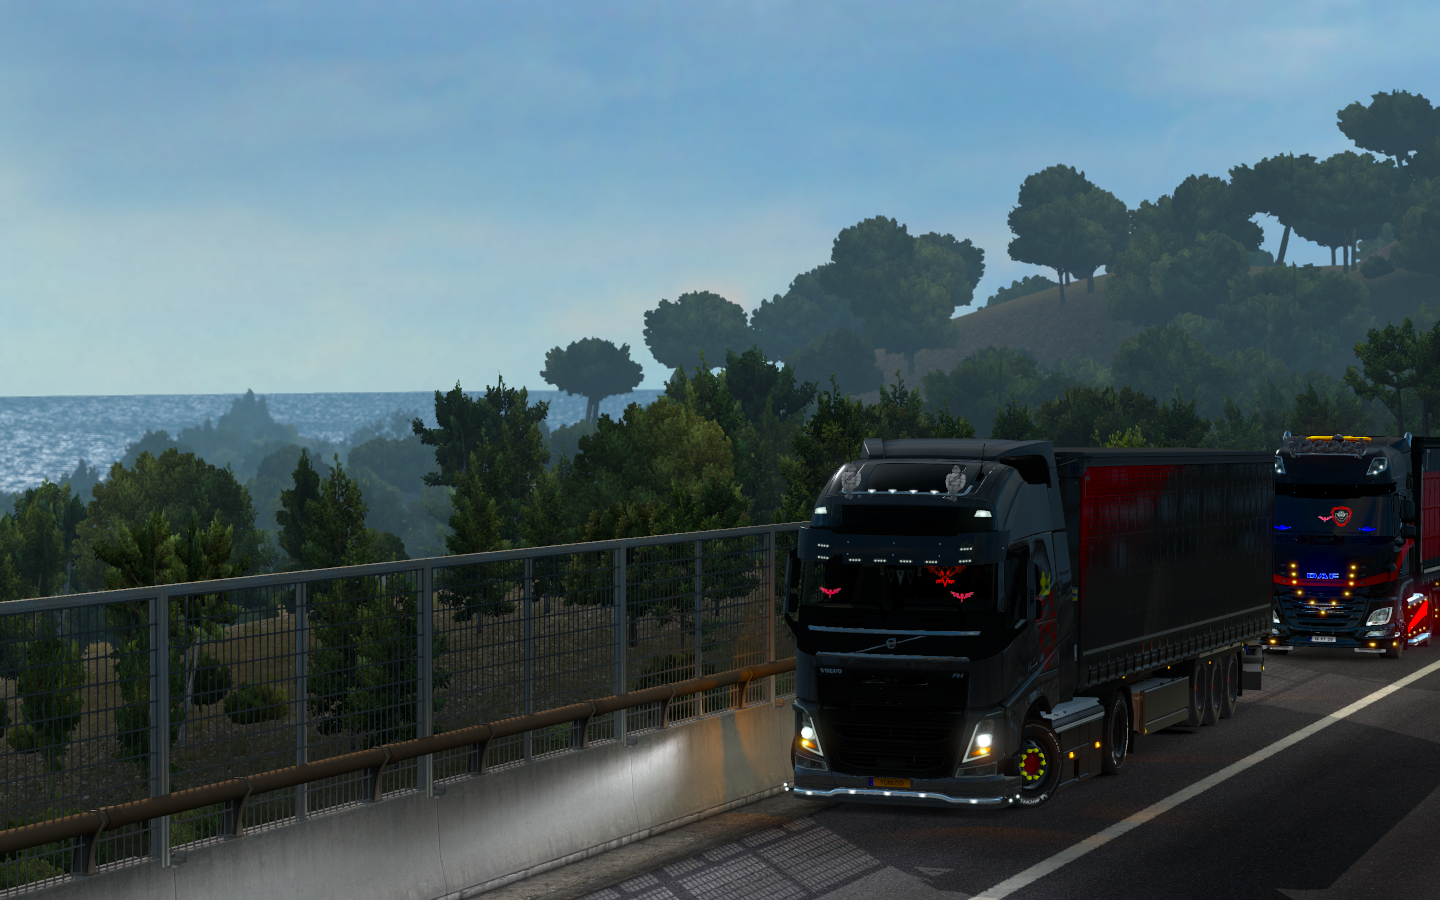 ets2_20190317_151818_00.png